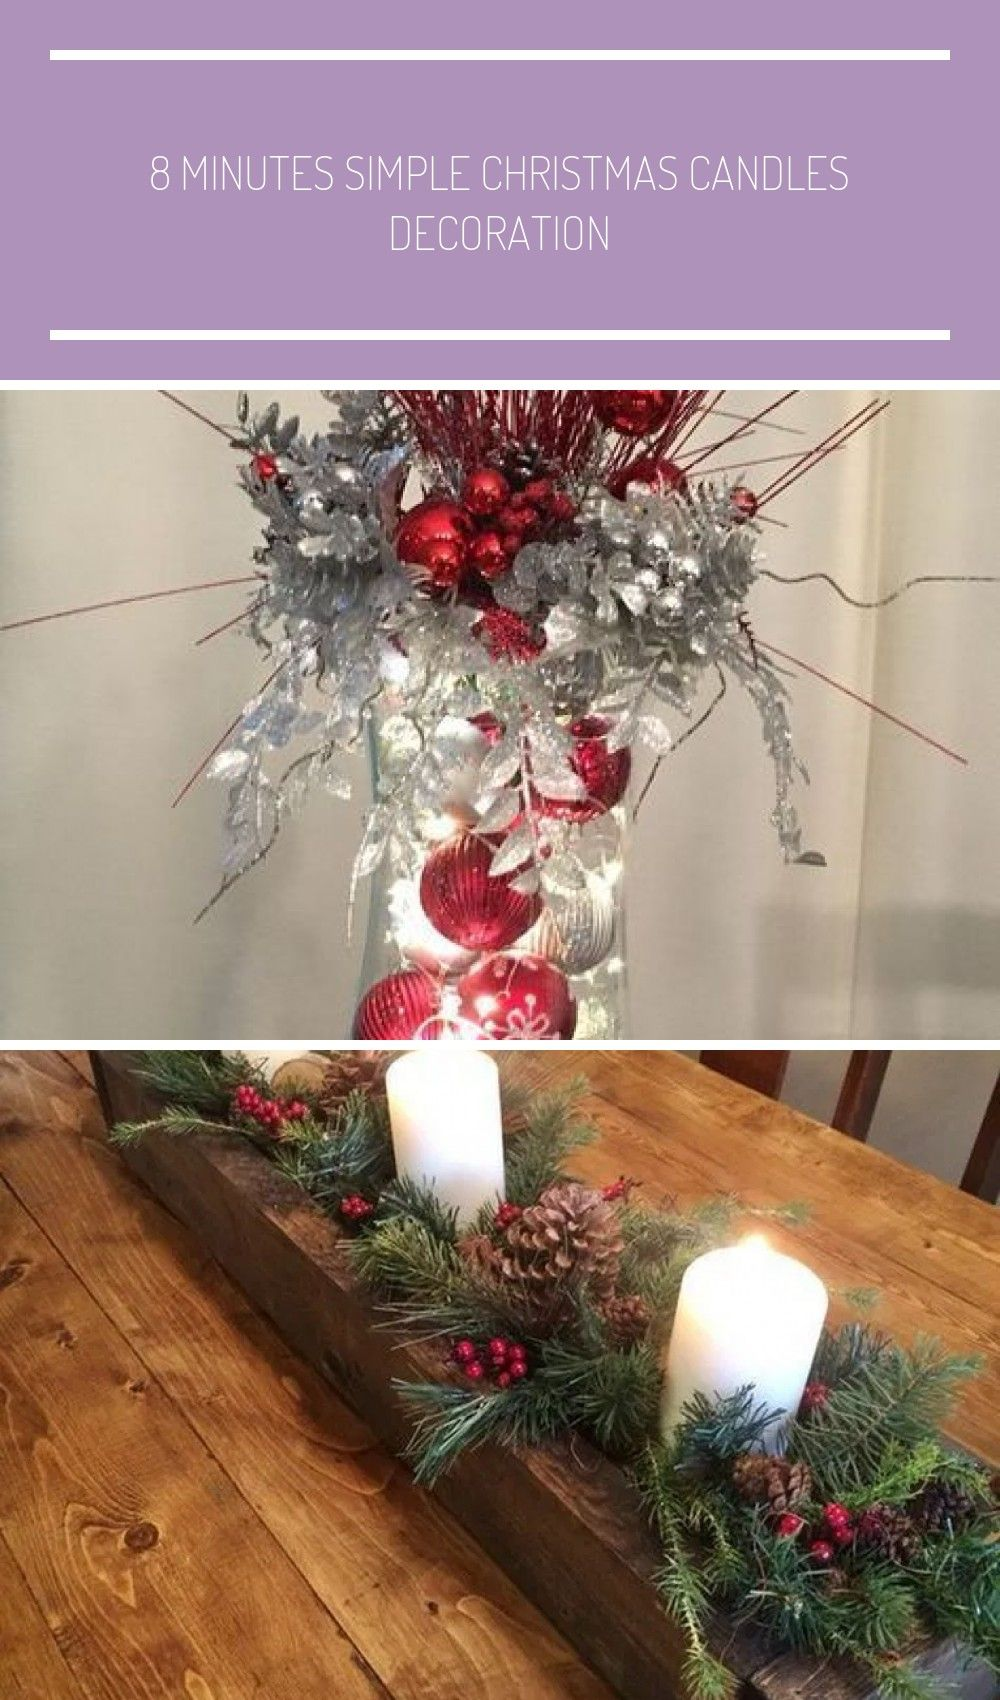 31 Awesome Christmas Table Centerpieces Decoration Ideas Diy Christmas Center Christmas Centerpieces Diy Christmas Centerpieces Table Centerpiece Decorations